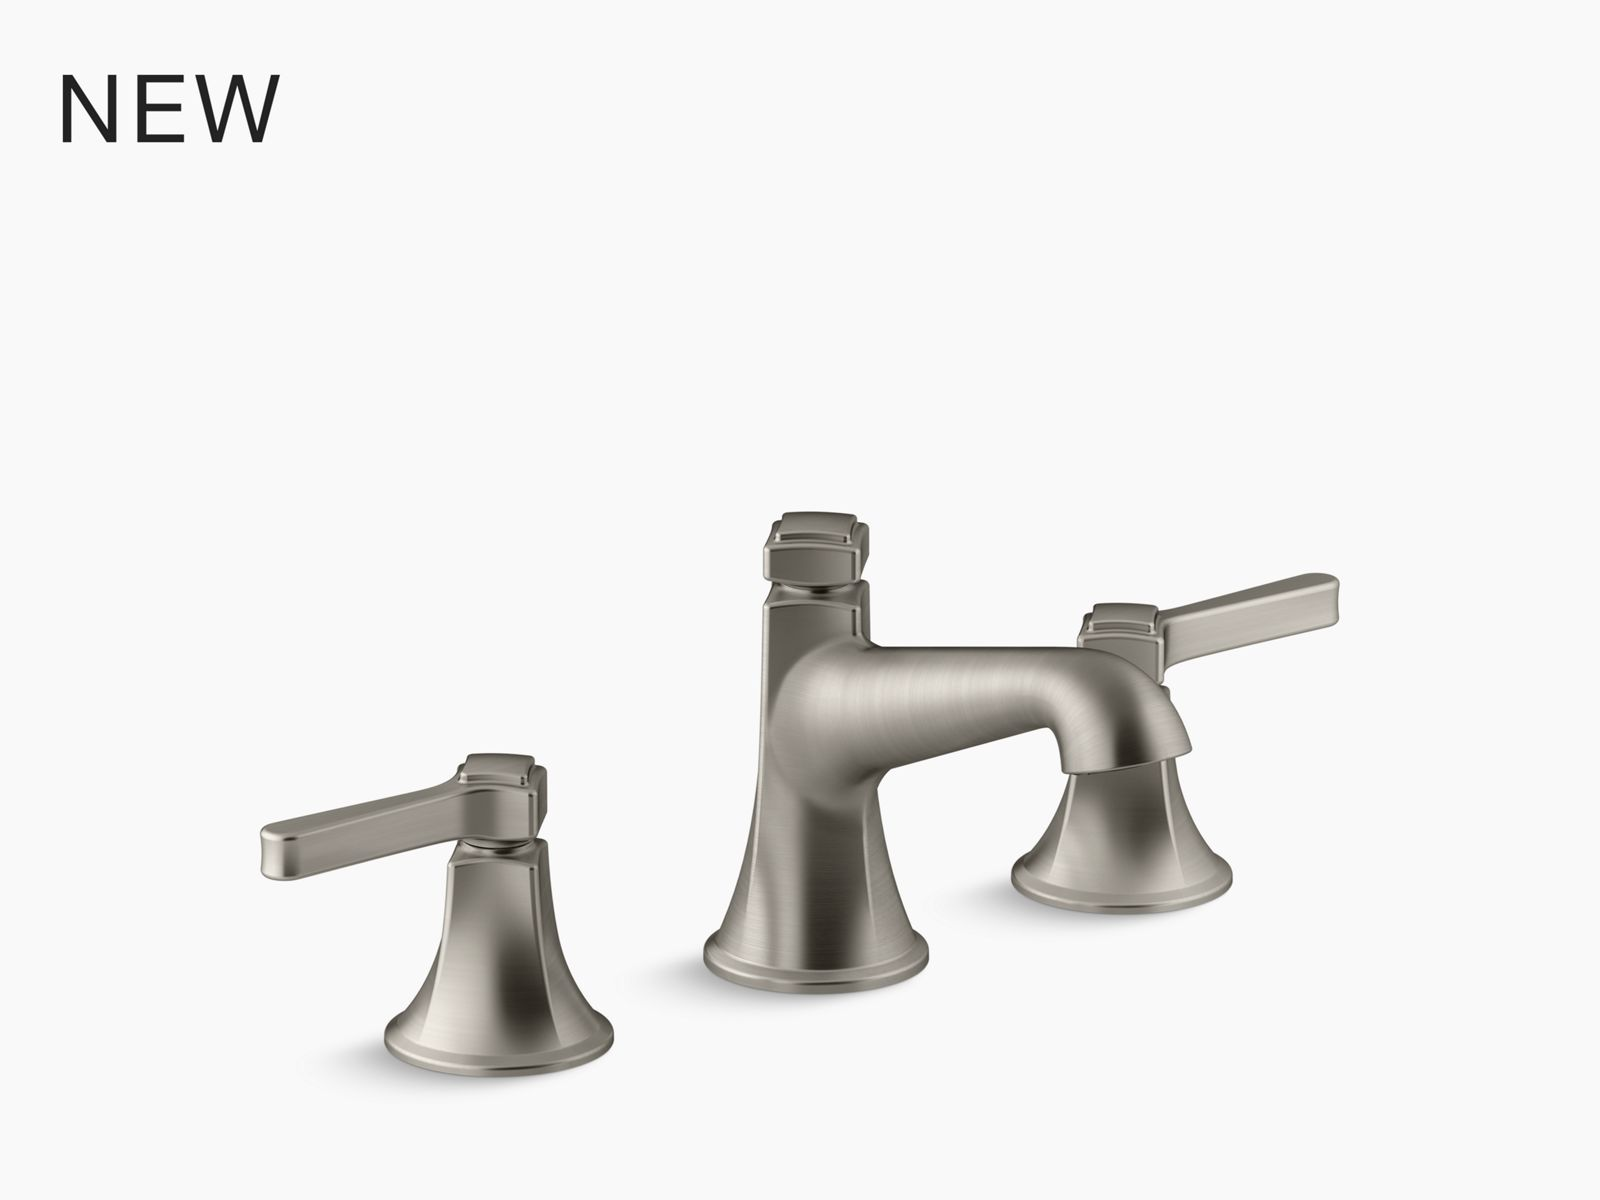 artifacts 2 hole kitchen sink faucet with 14 11 16 swing spout and matching finish two function side spray with sweep and berrysoft spray arc